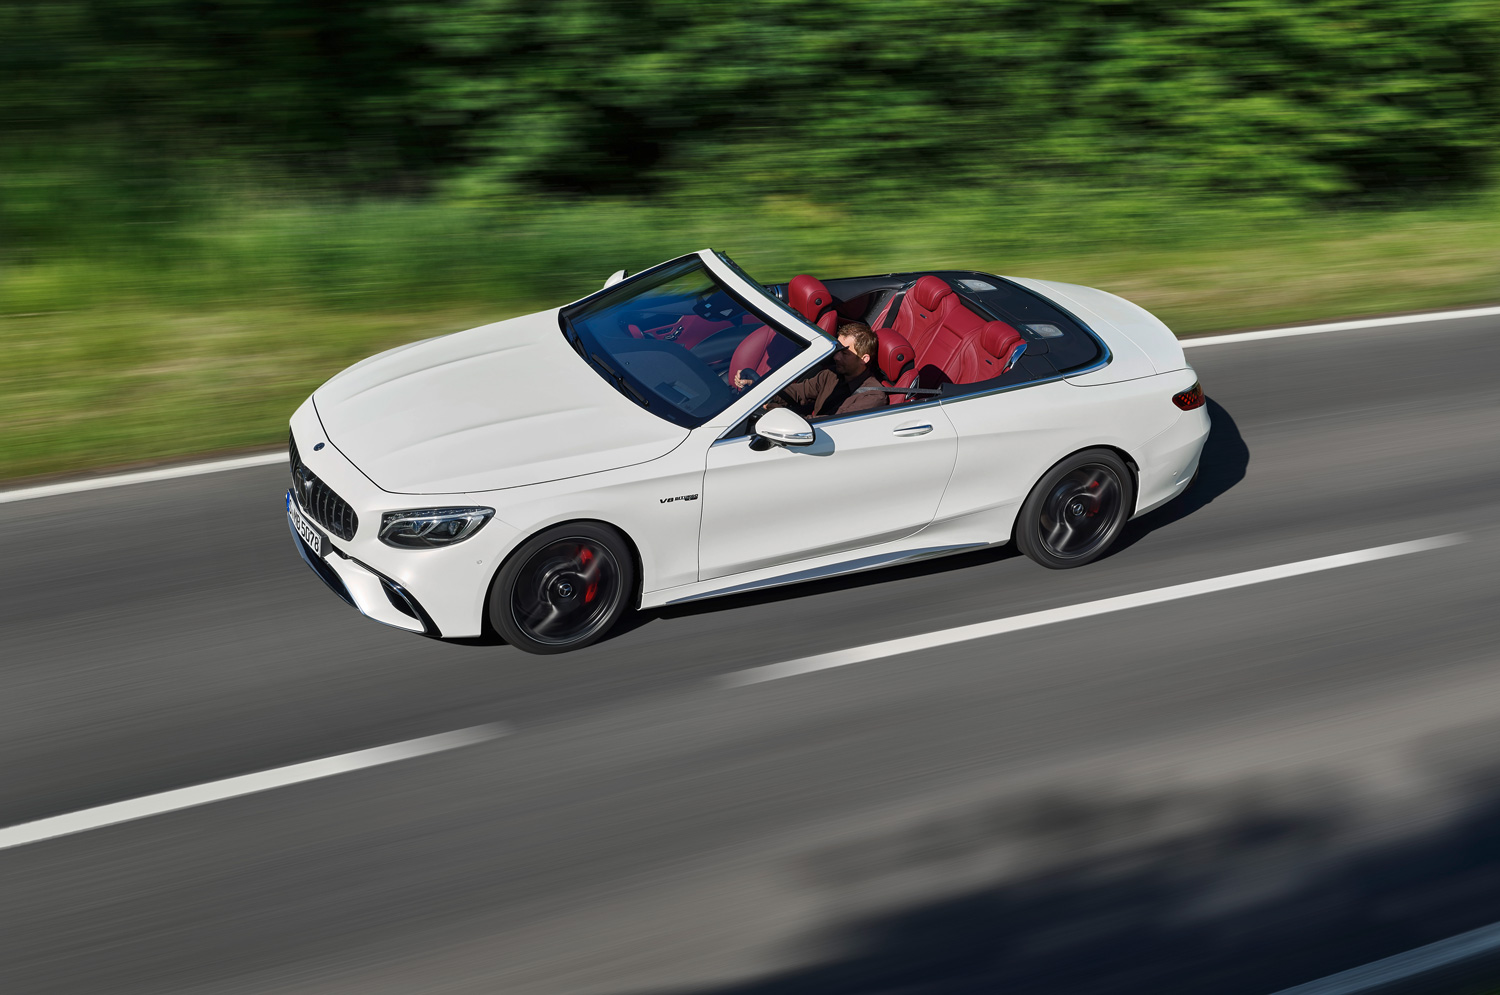 2018 Mercedes-AMG S63 Cabriolet